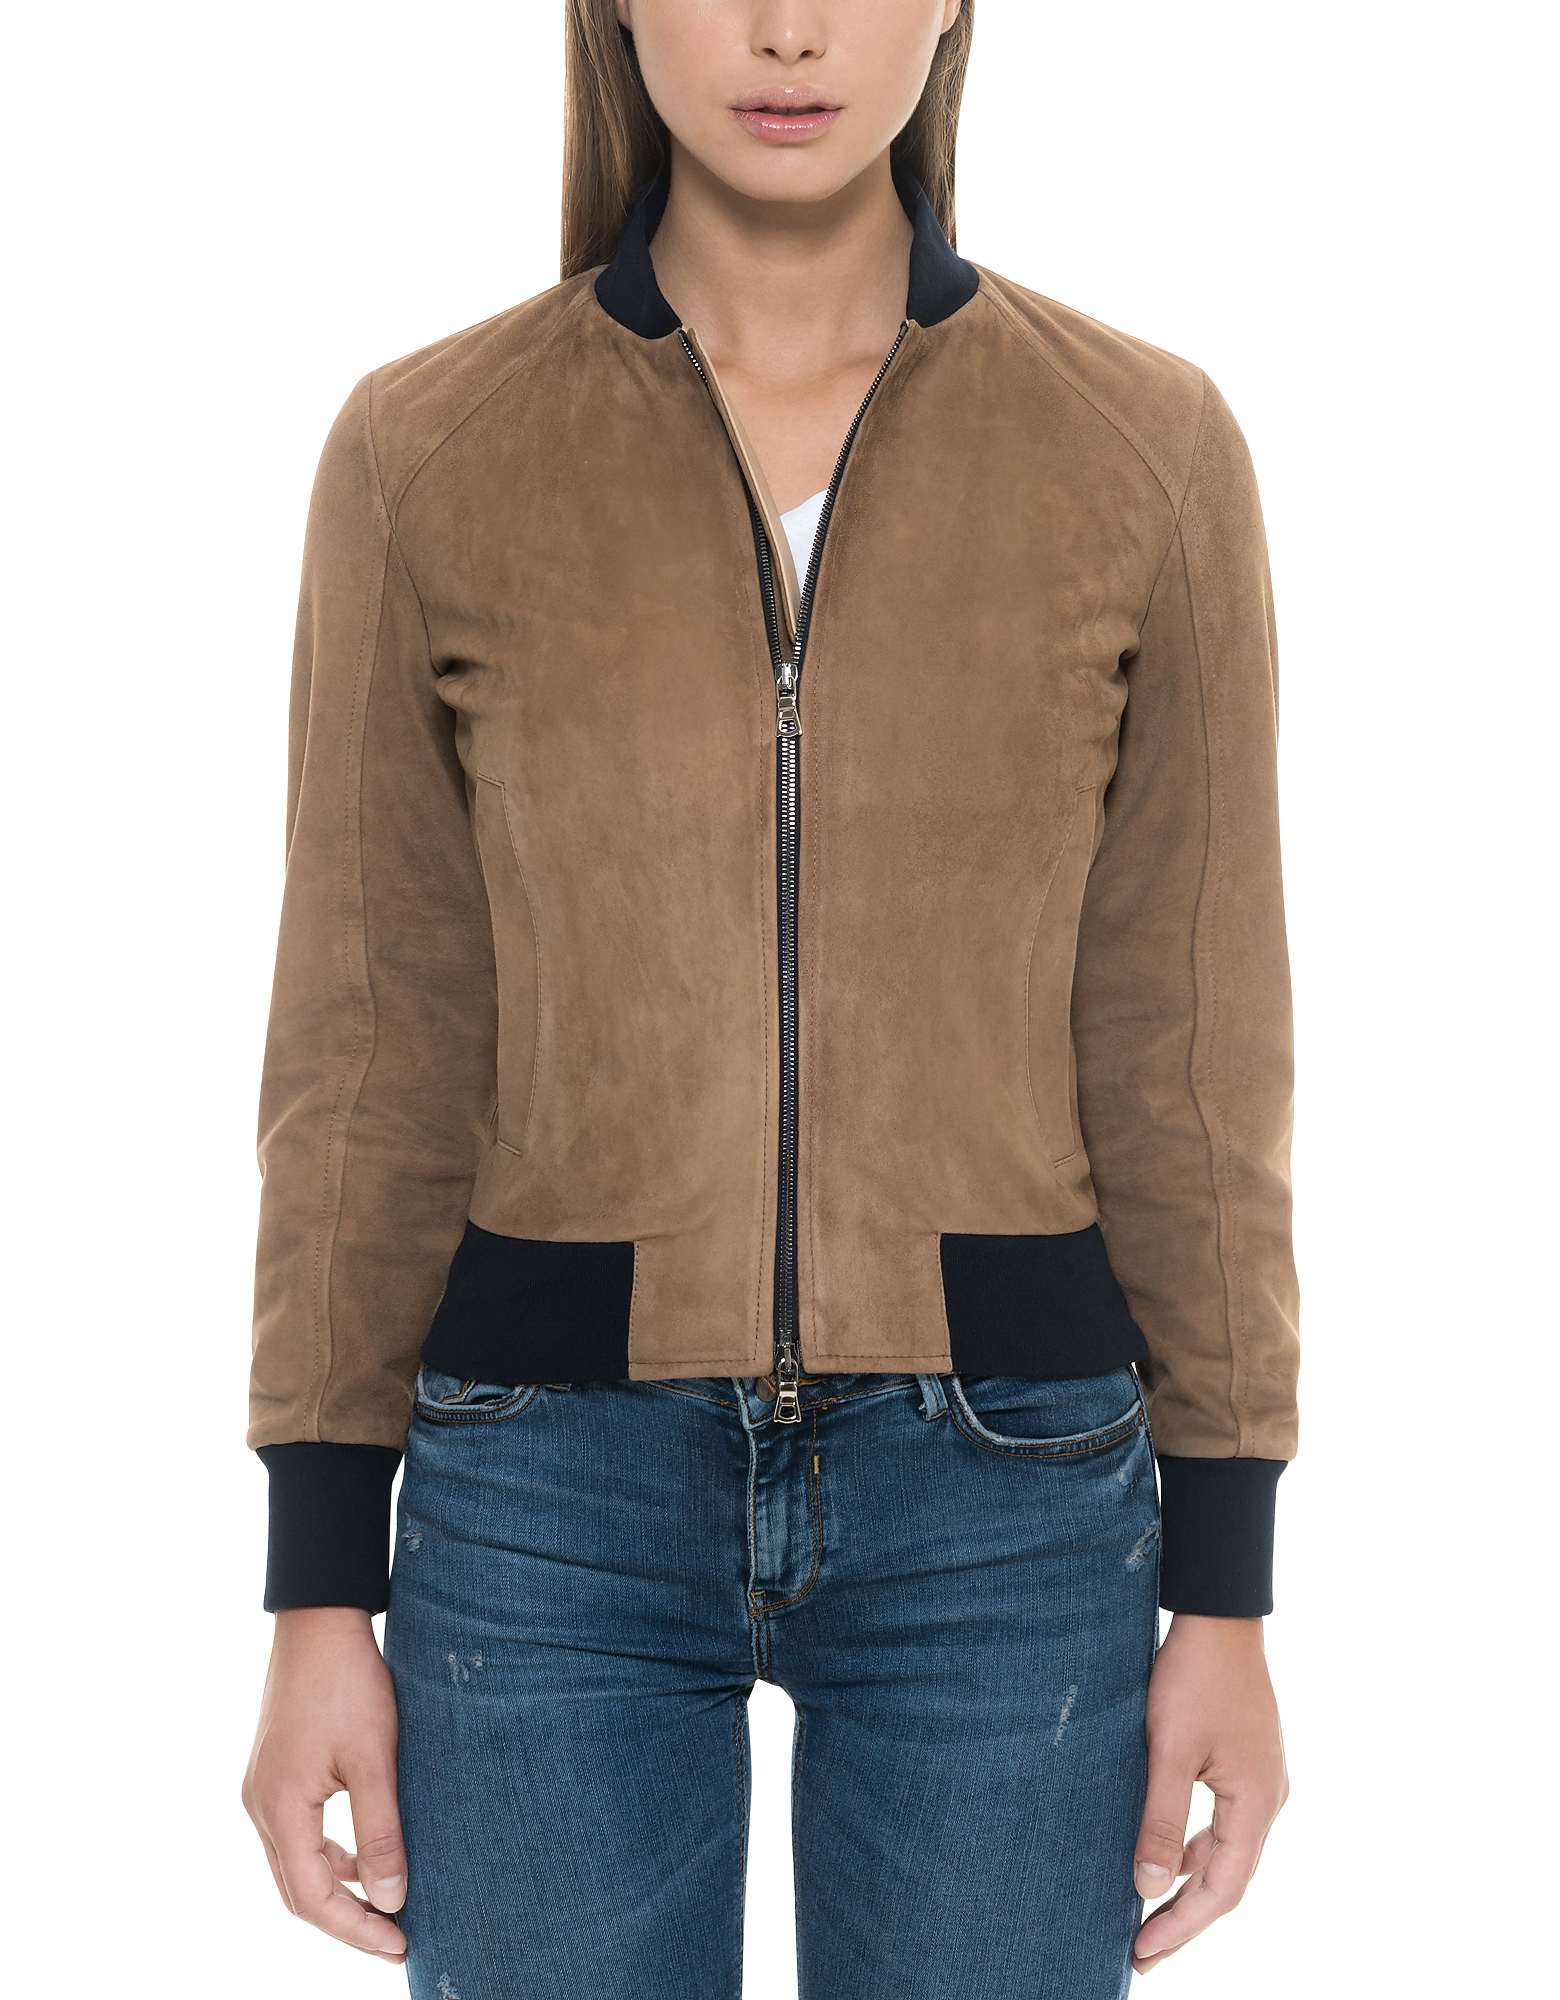 Forzieri Leather Jackets, Brown Suede Women's Bomber Jacket